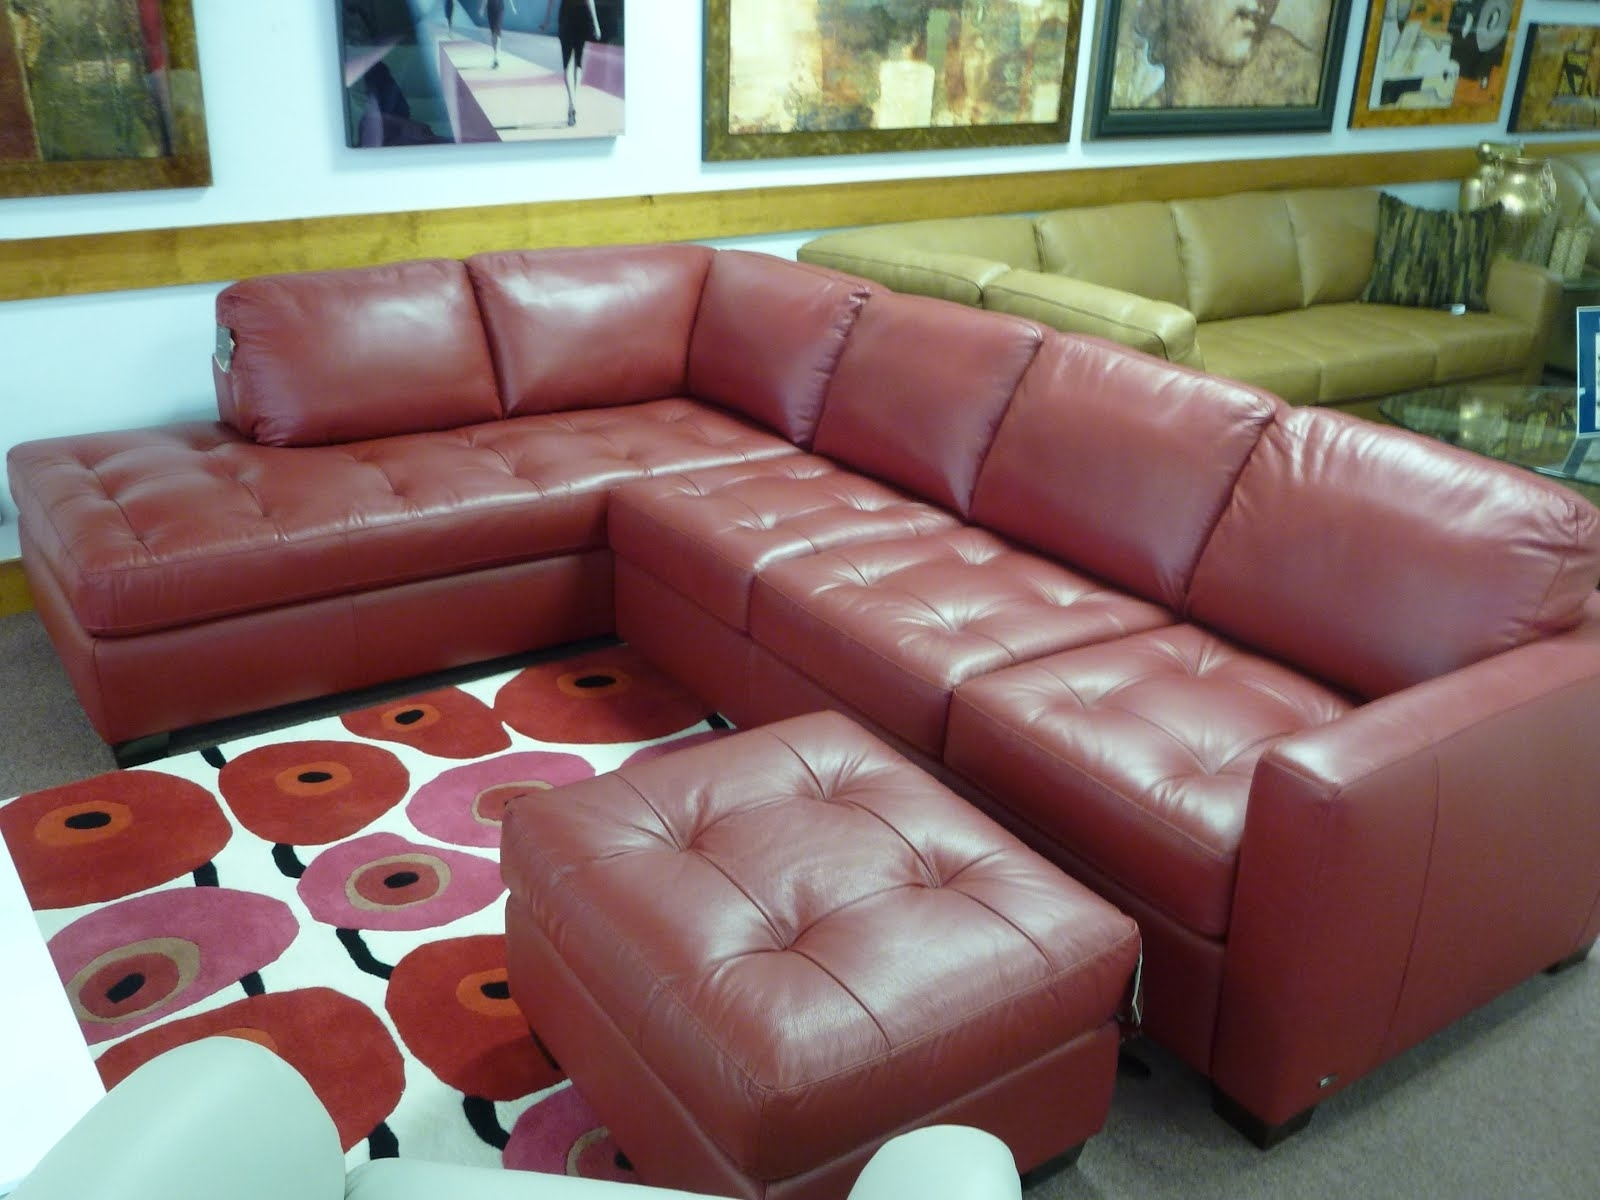 Red Leather Sectional Sofas With Ottoman Inside Fashionable Sectional Sofa Design: Wonderful Natuzzi Leather Sectional Sofa (View 7 of 15)